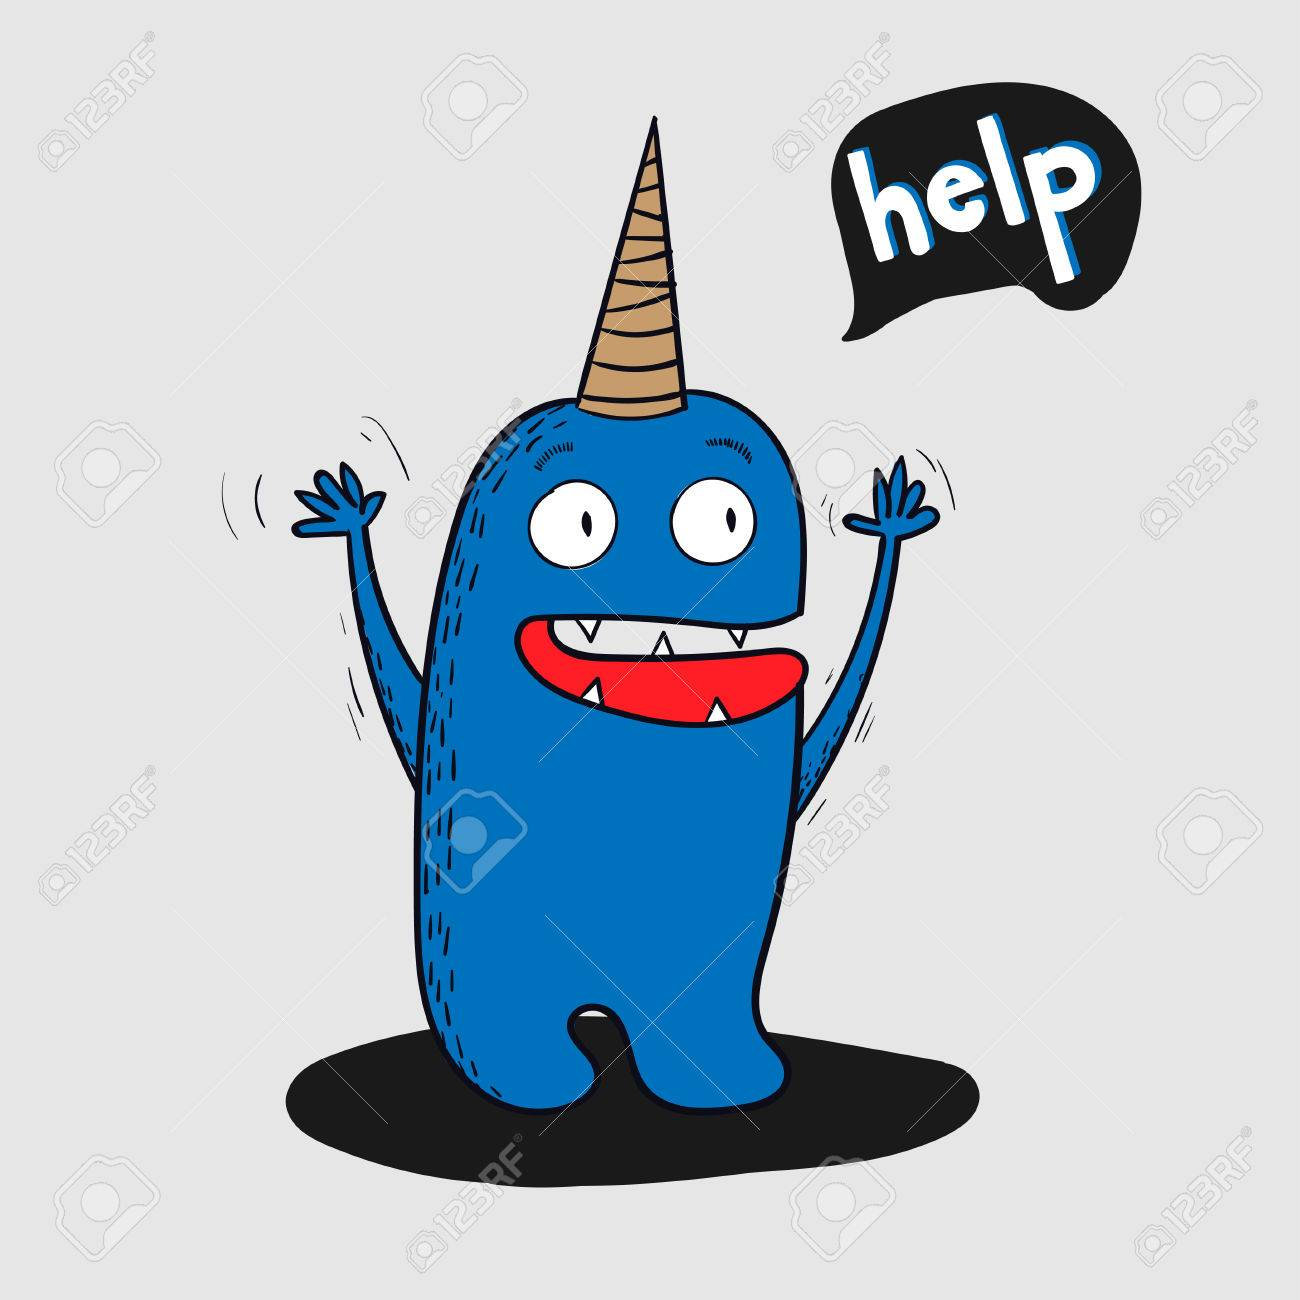 Asking for help clipart 7 » Clipart Station.